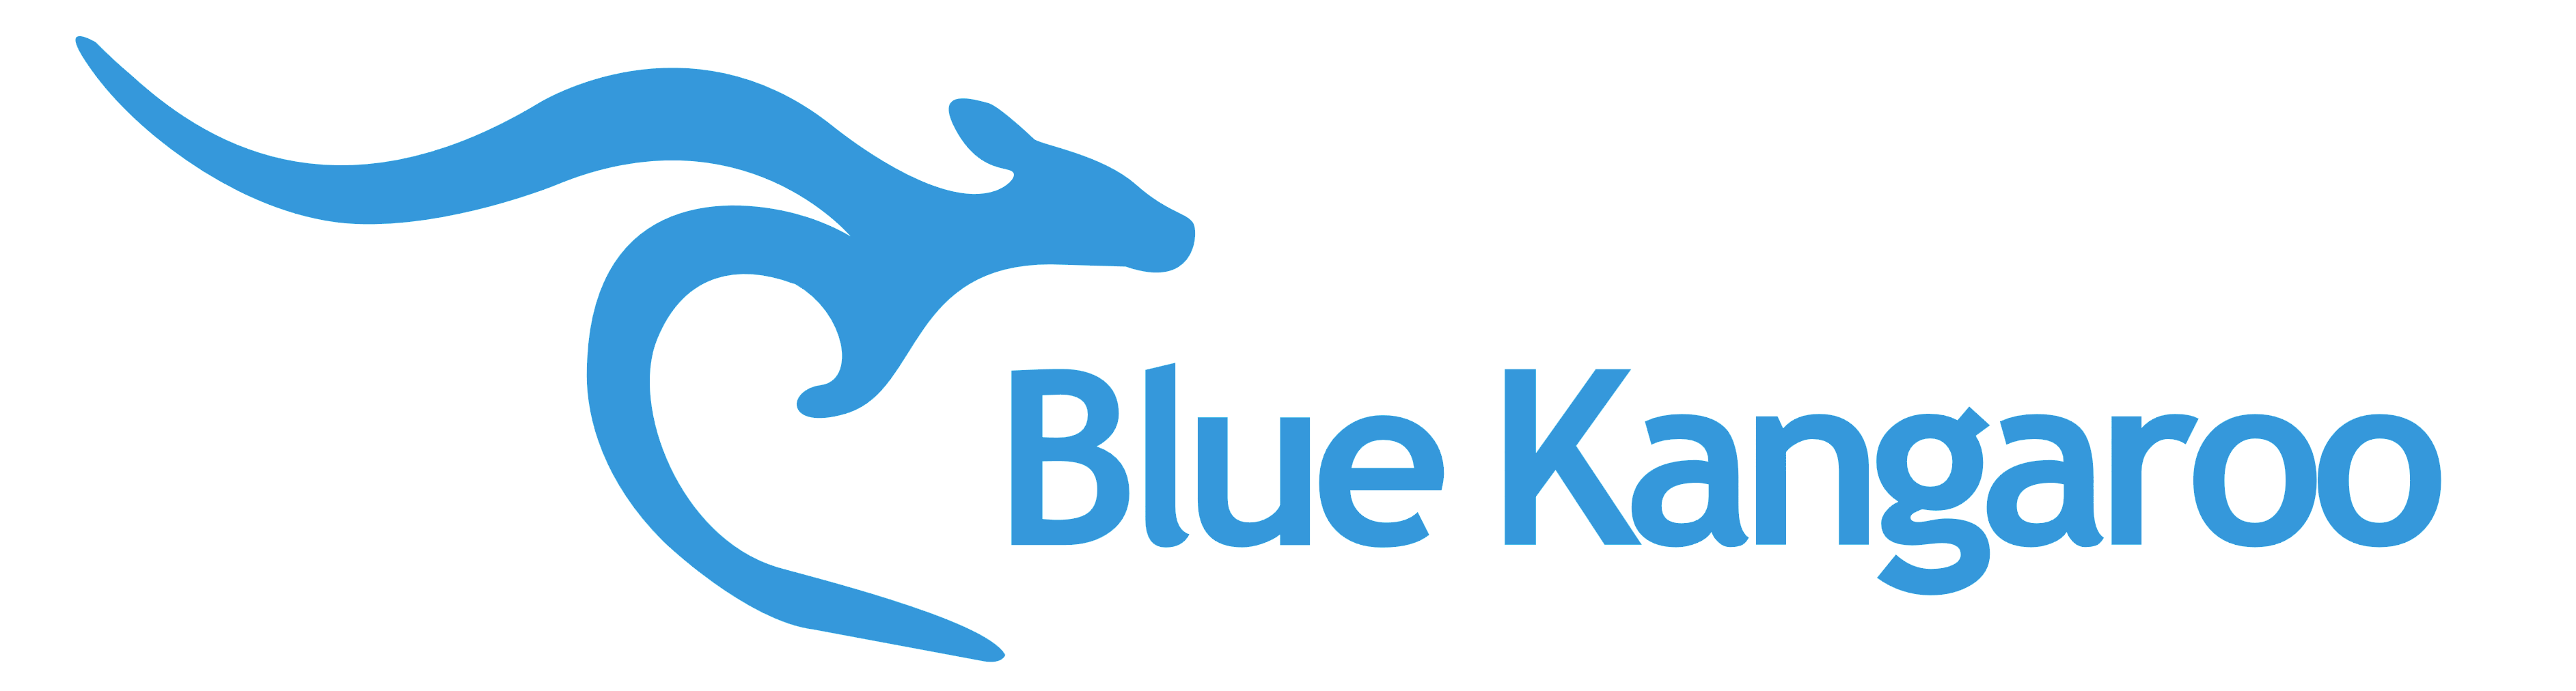 blue kangaroo logos download